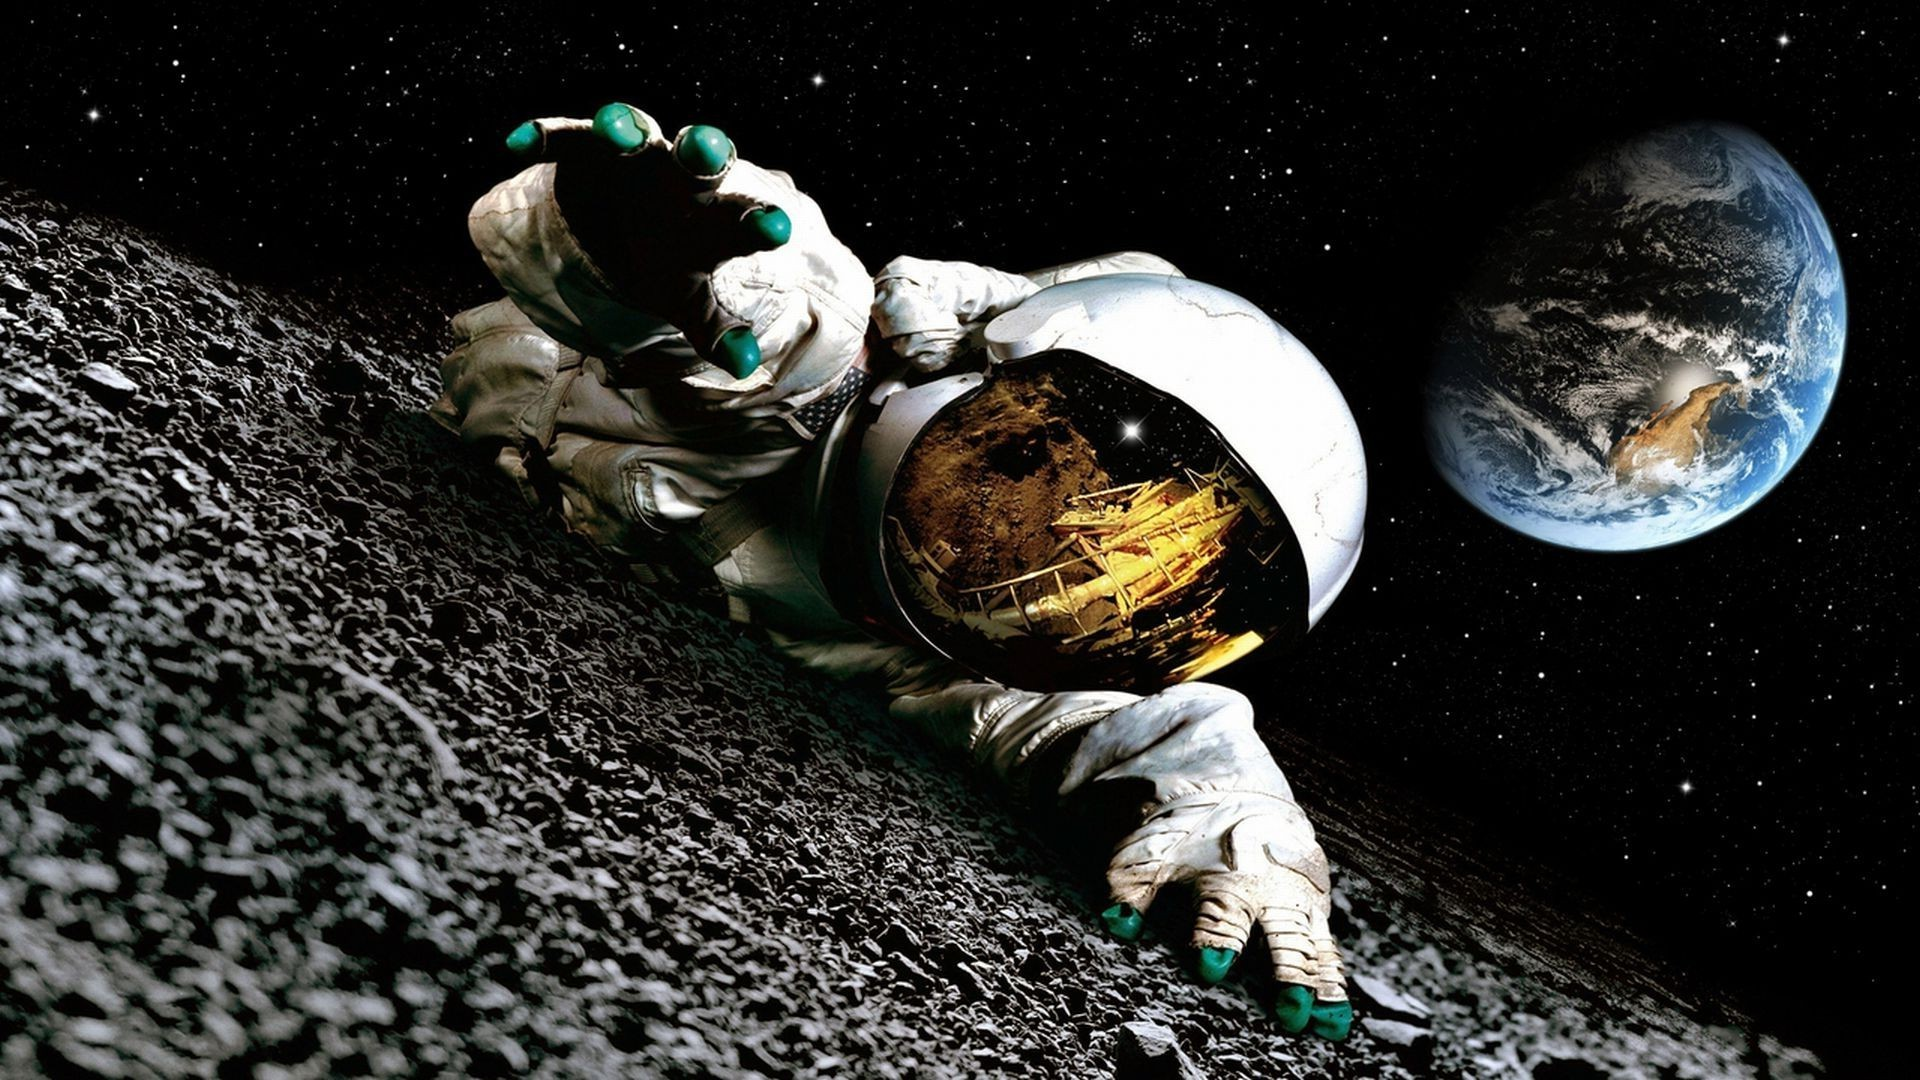 Astronaut on the moon wallpaper wallpapersafari - Doge steam background ...